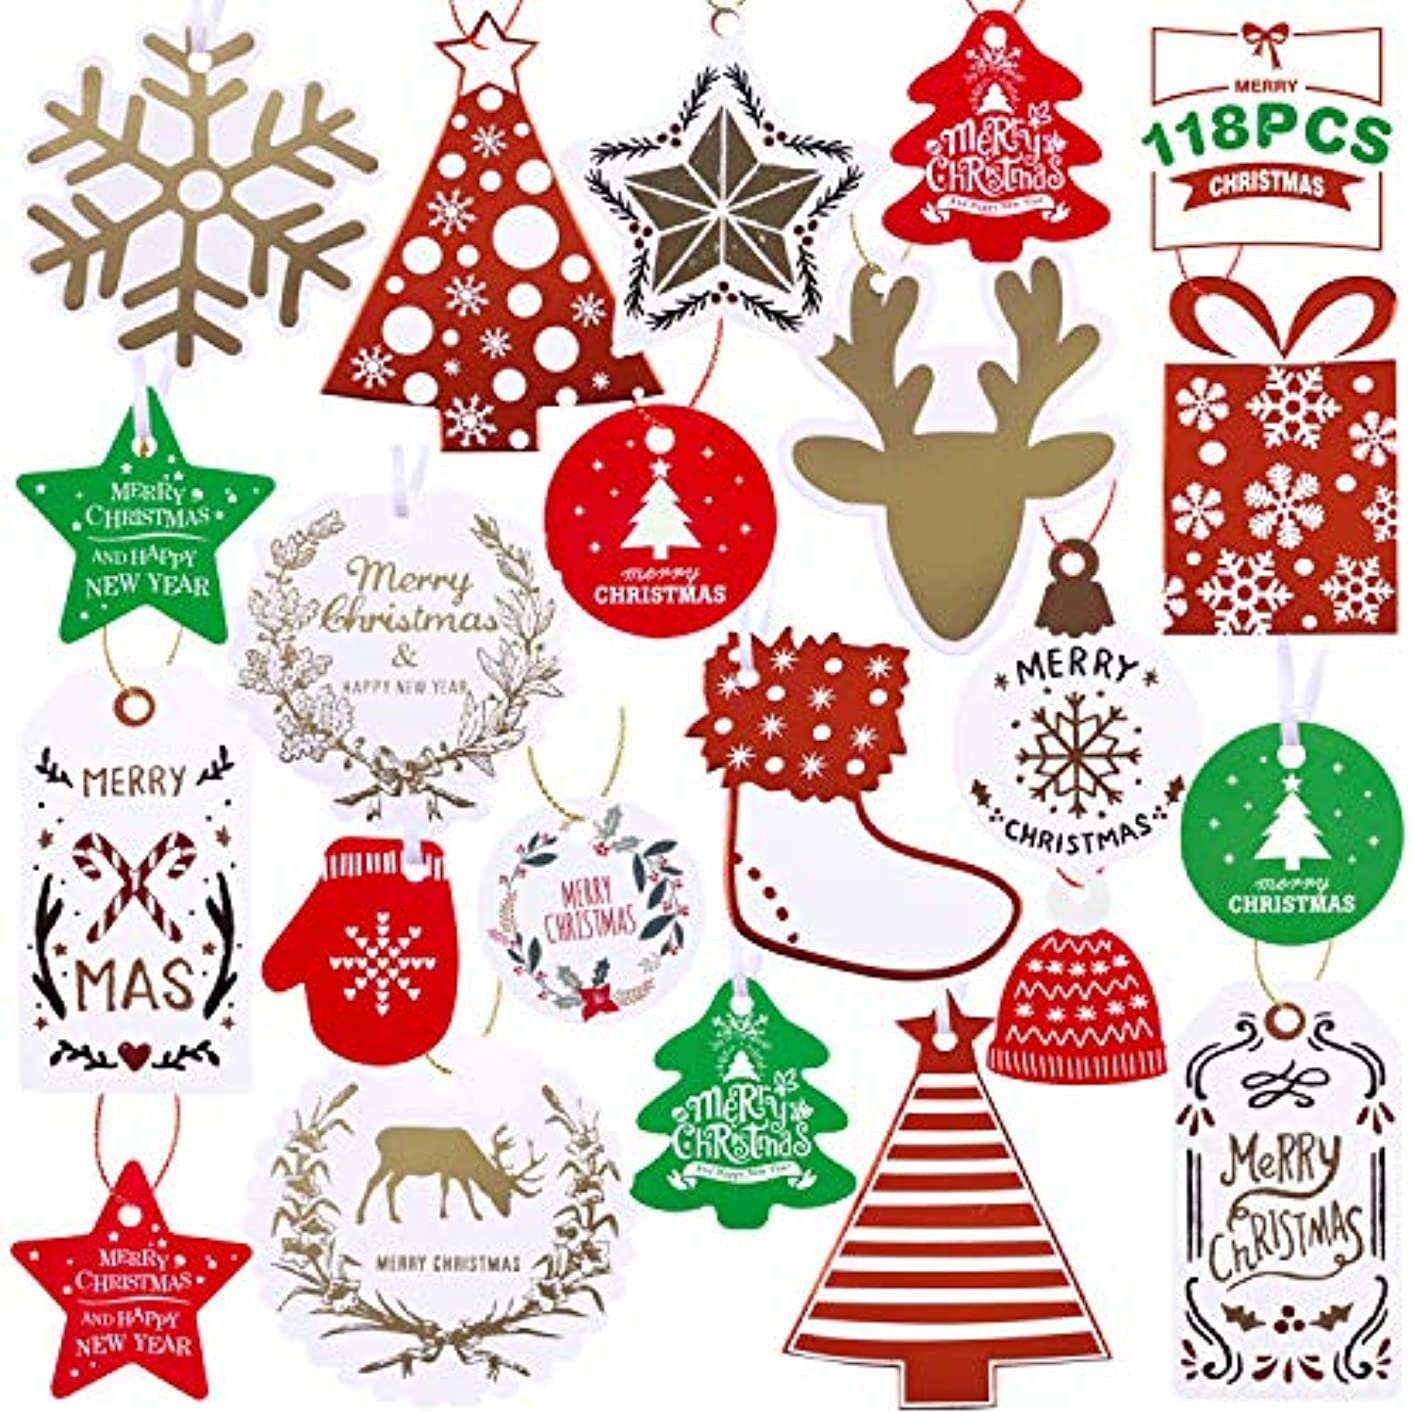 118 Count Christmas Gift Tags 21 Assorted Designs for DIY Xmas Present Gift Wrapping and Label Name Card Party Supplies